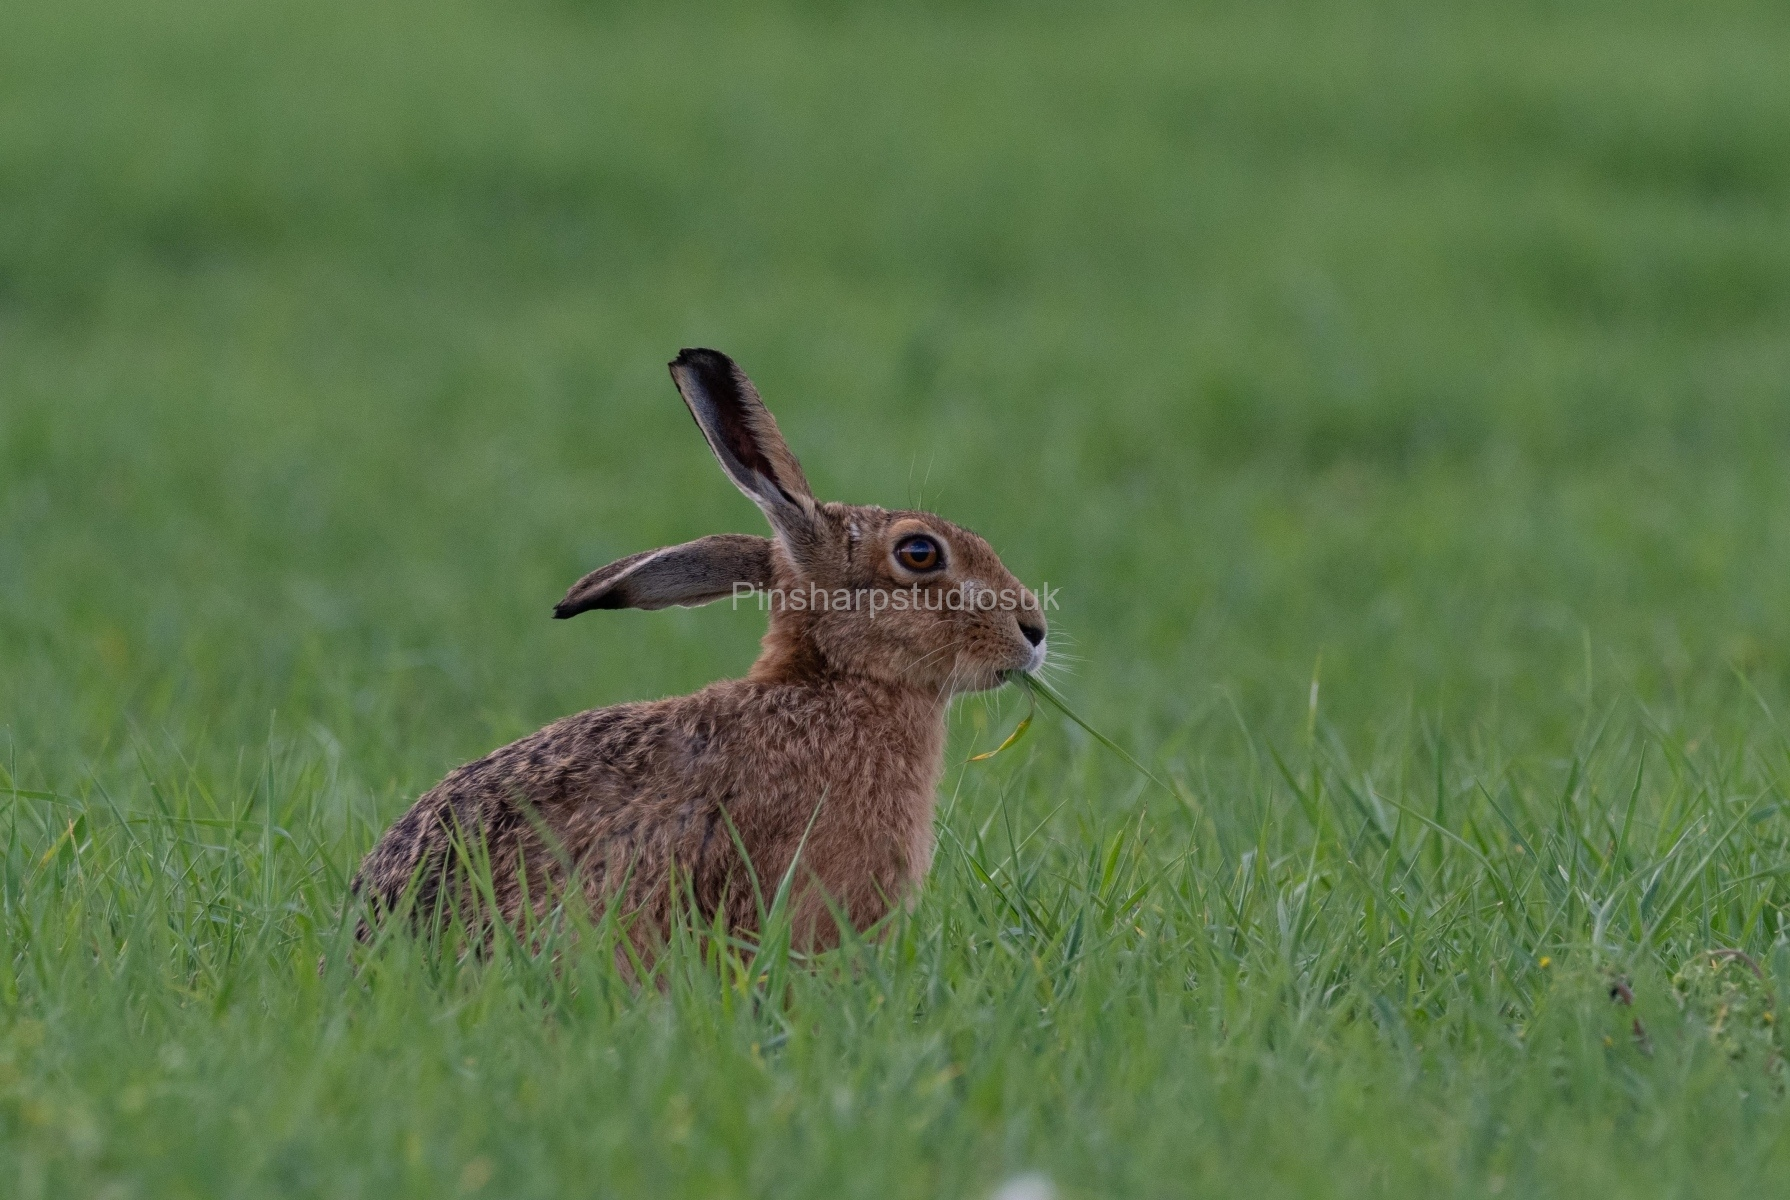 Brown Hare eating wheat shoots